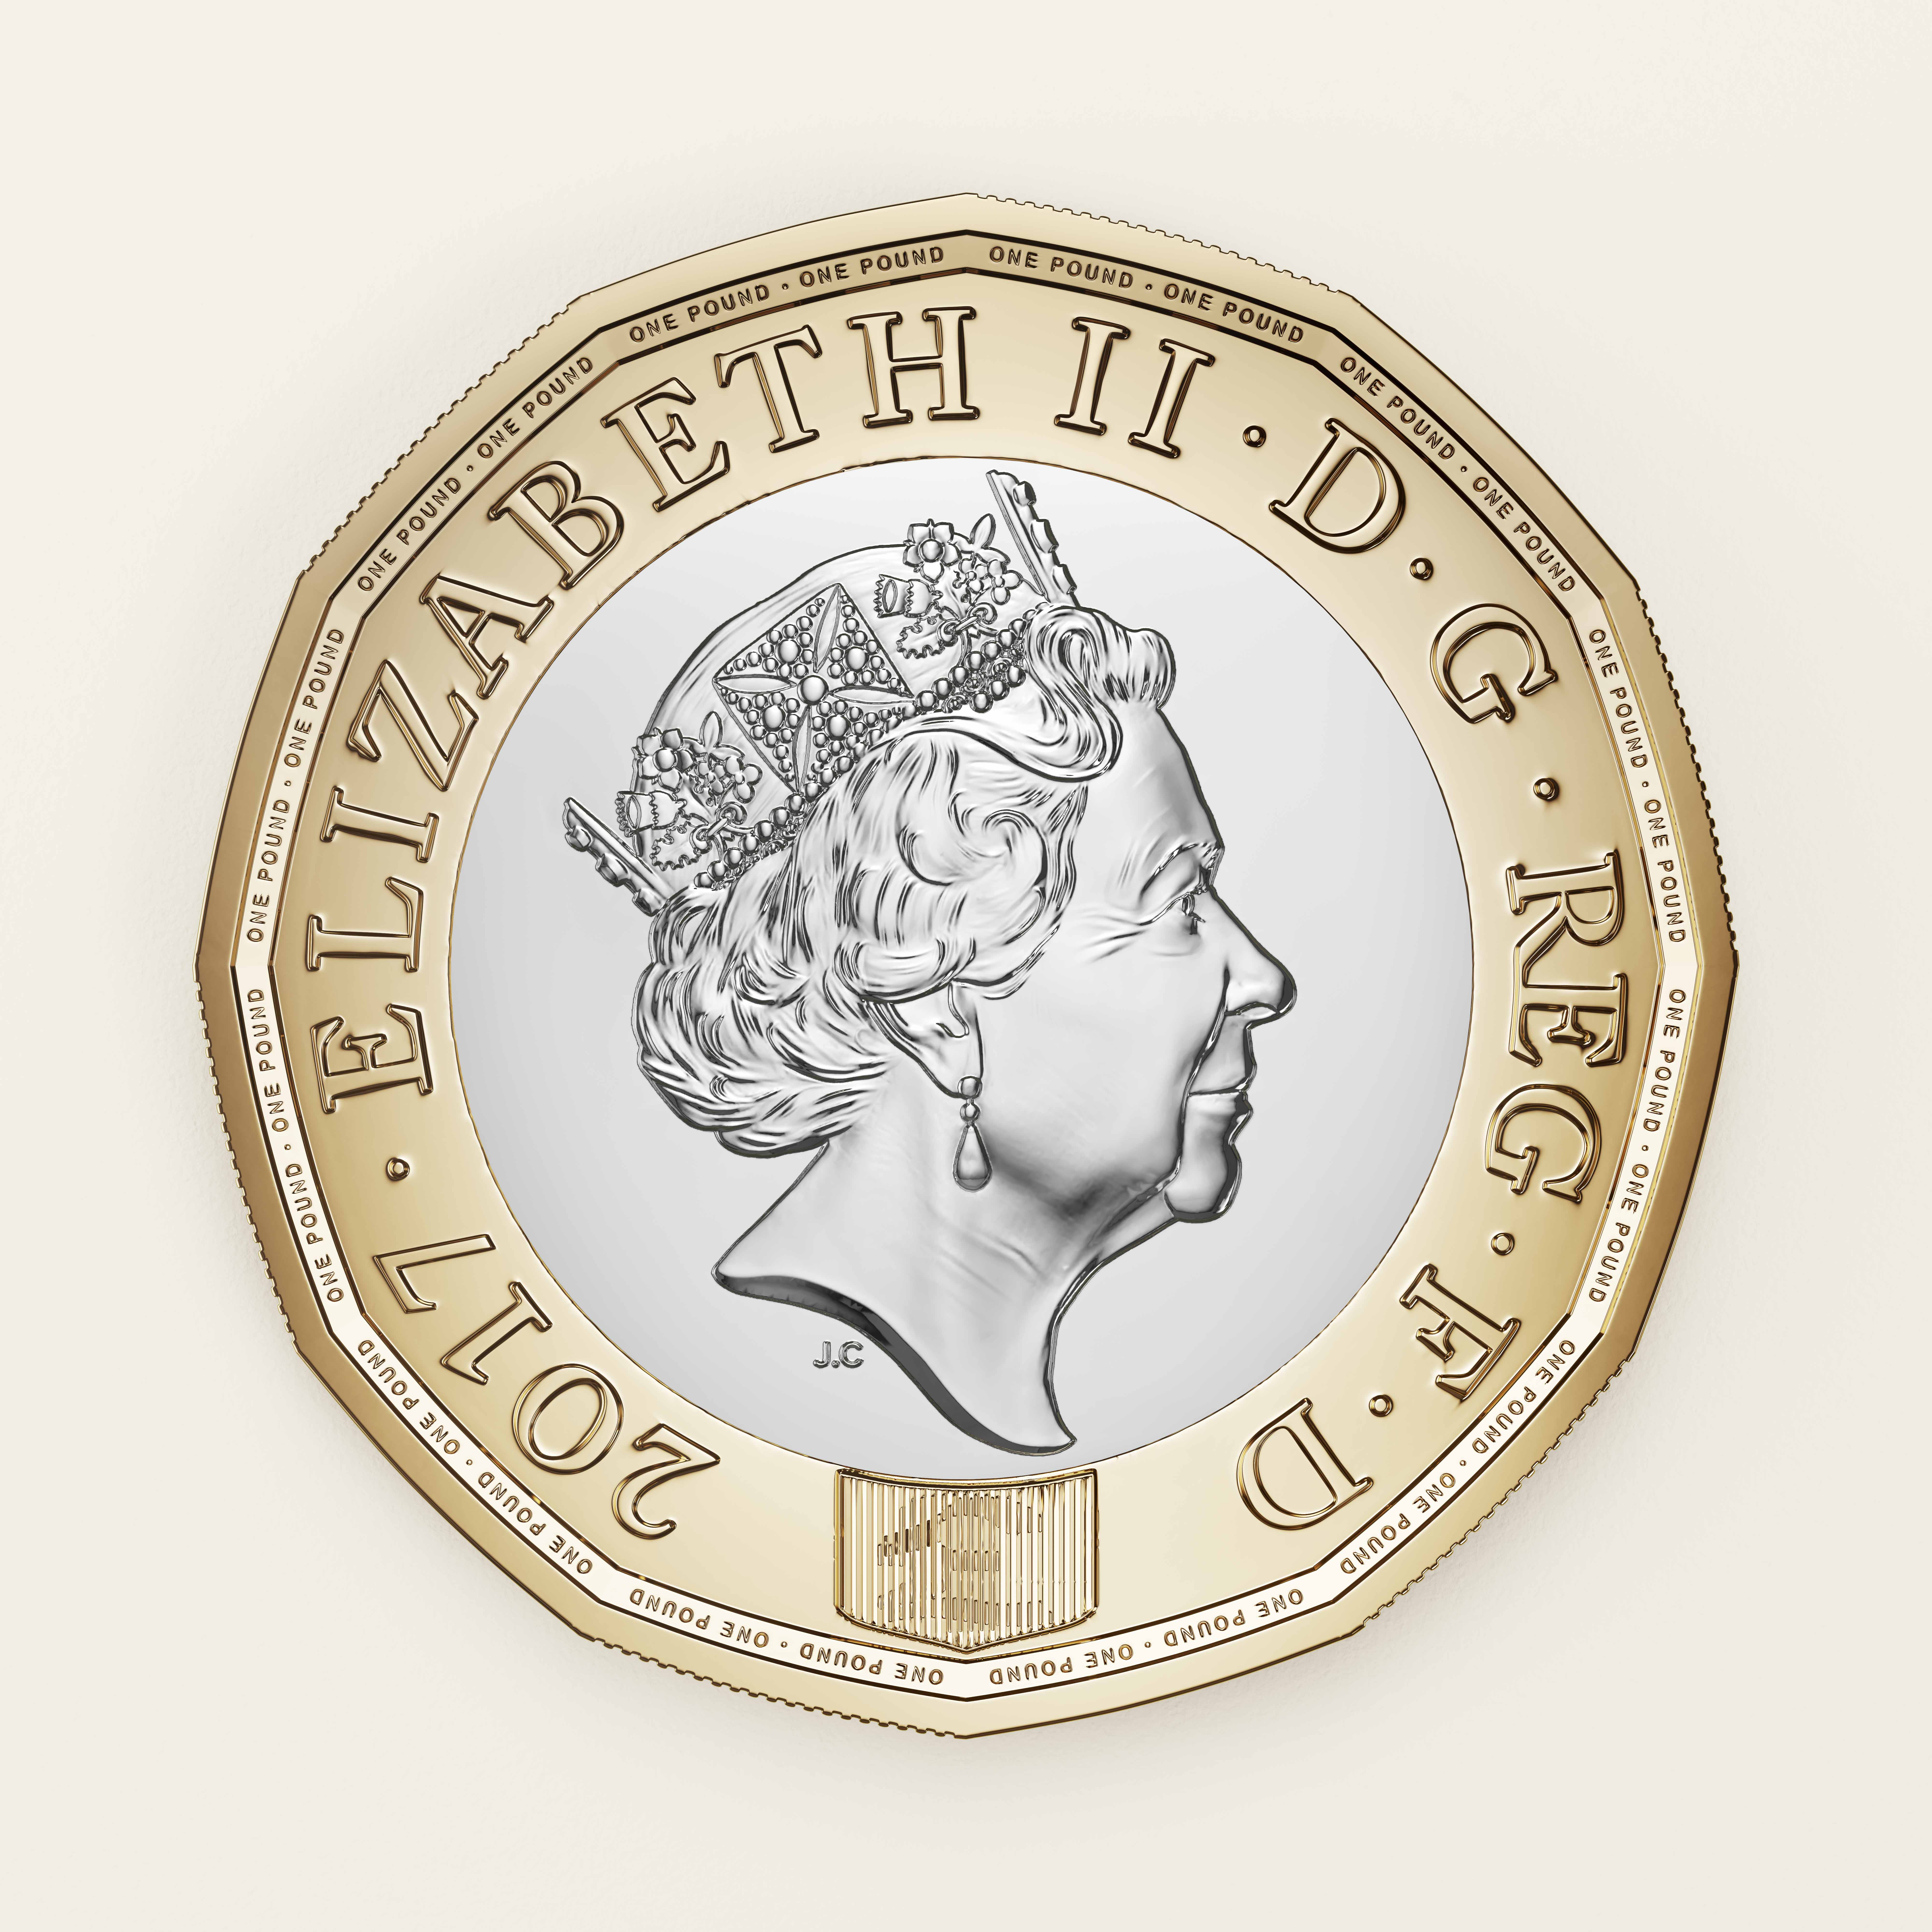 uk new 1 pound coin